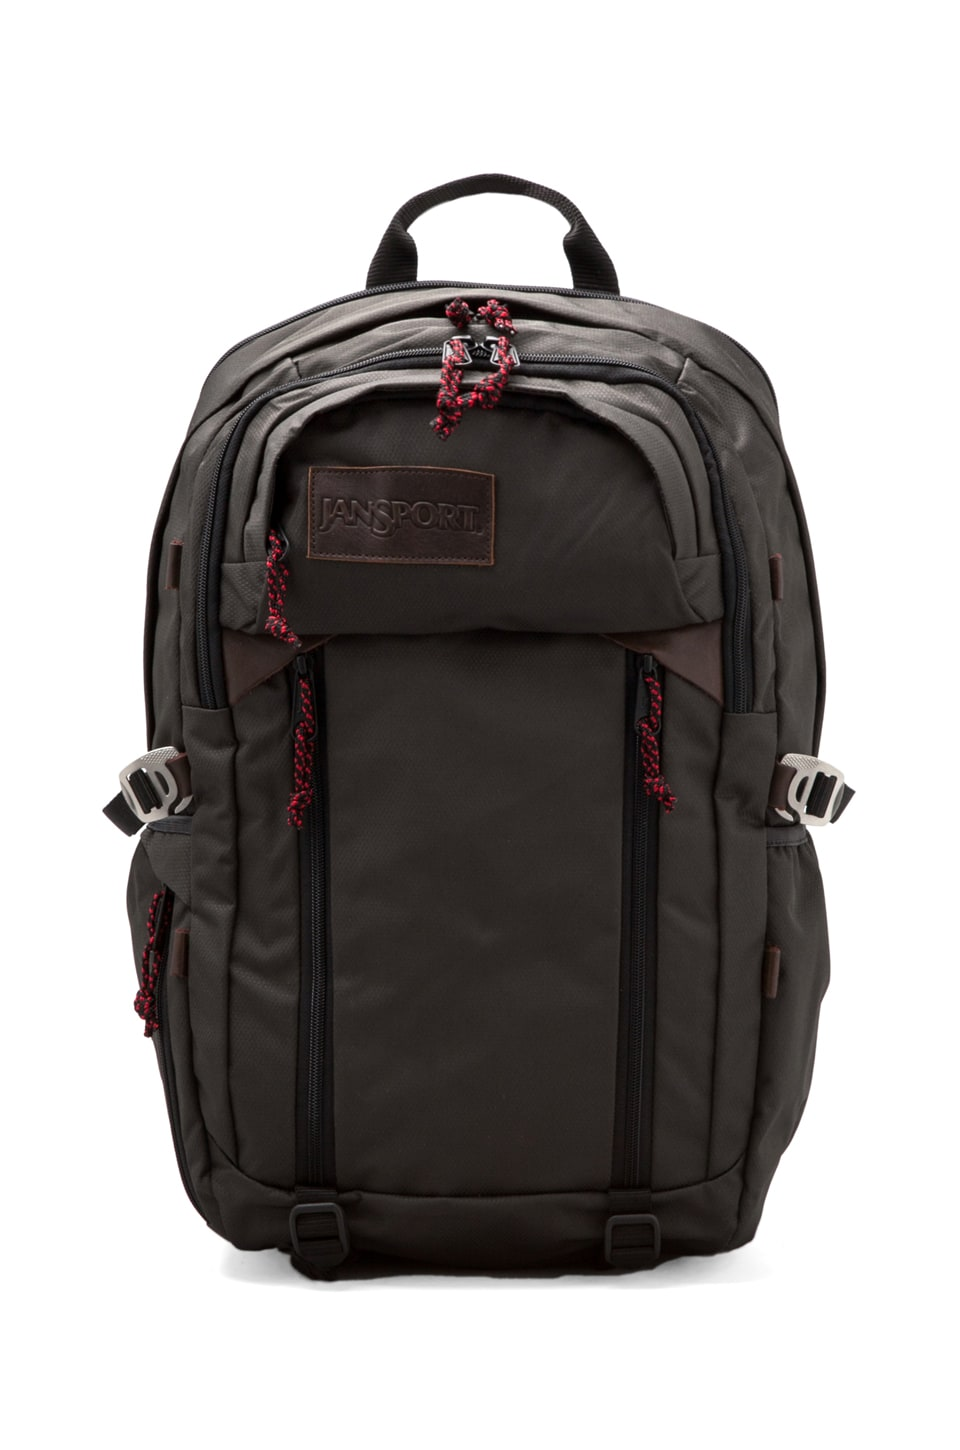 Jansport Oxidation Backpack in Grey Tar